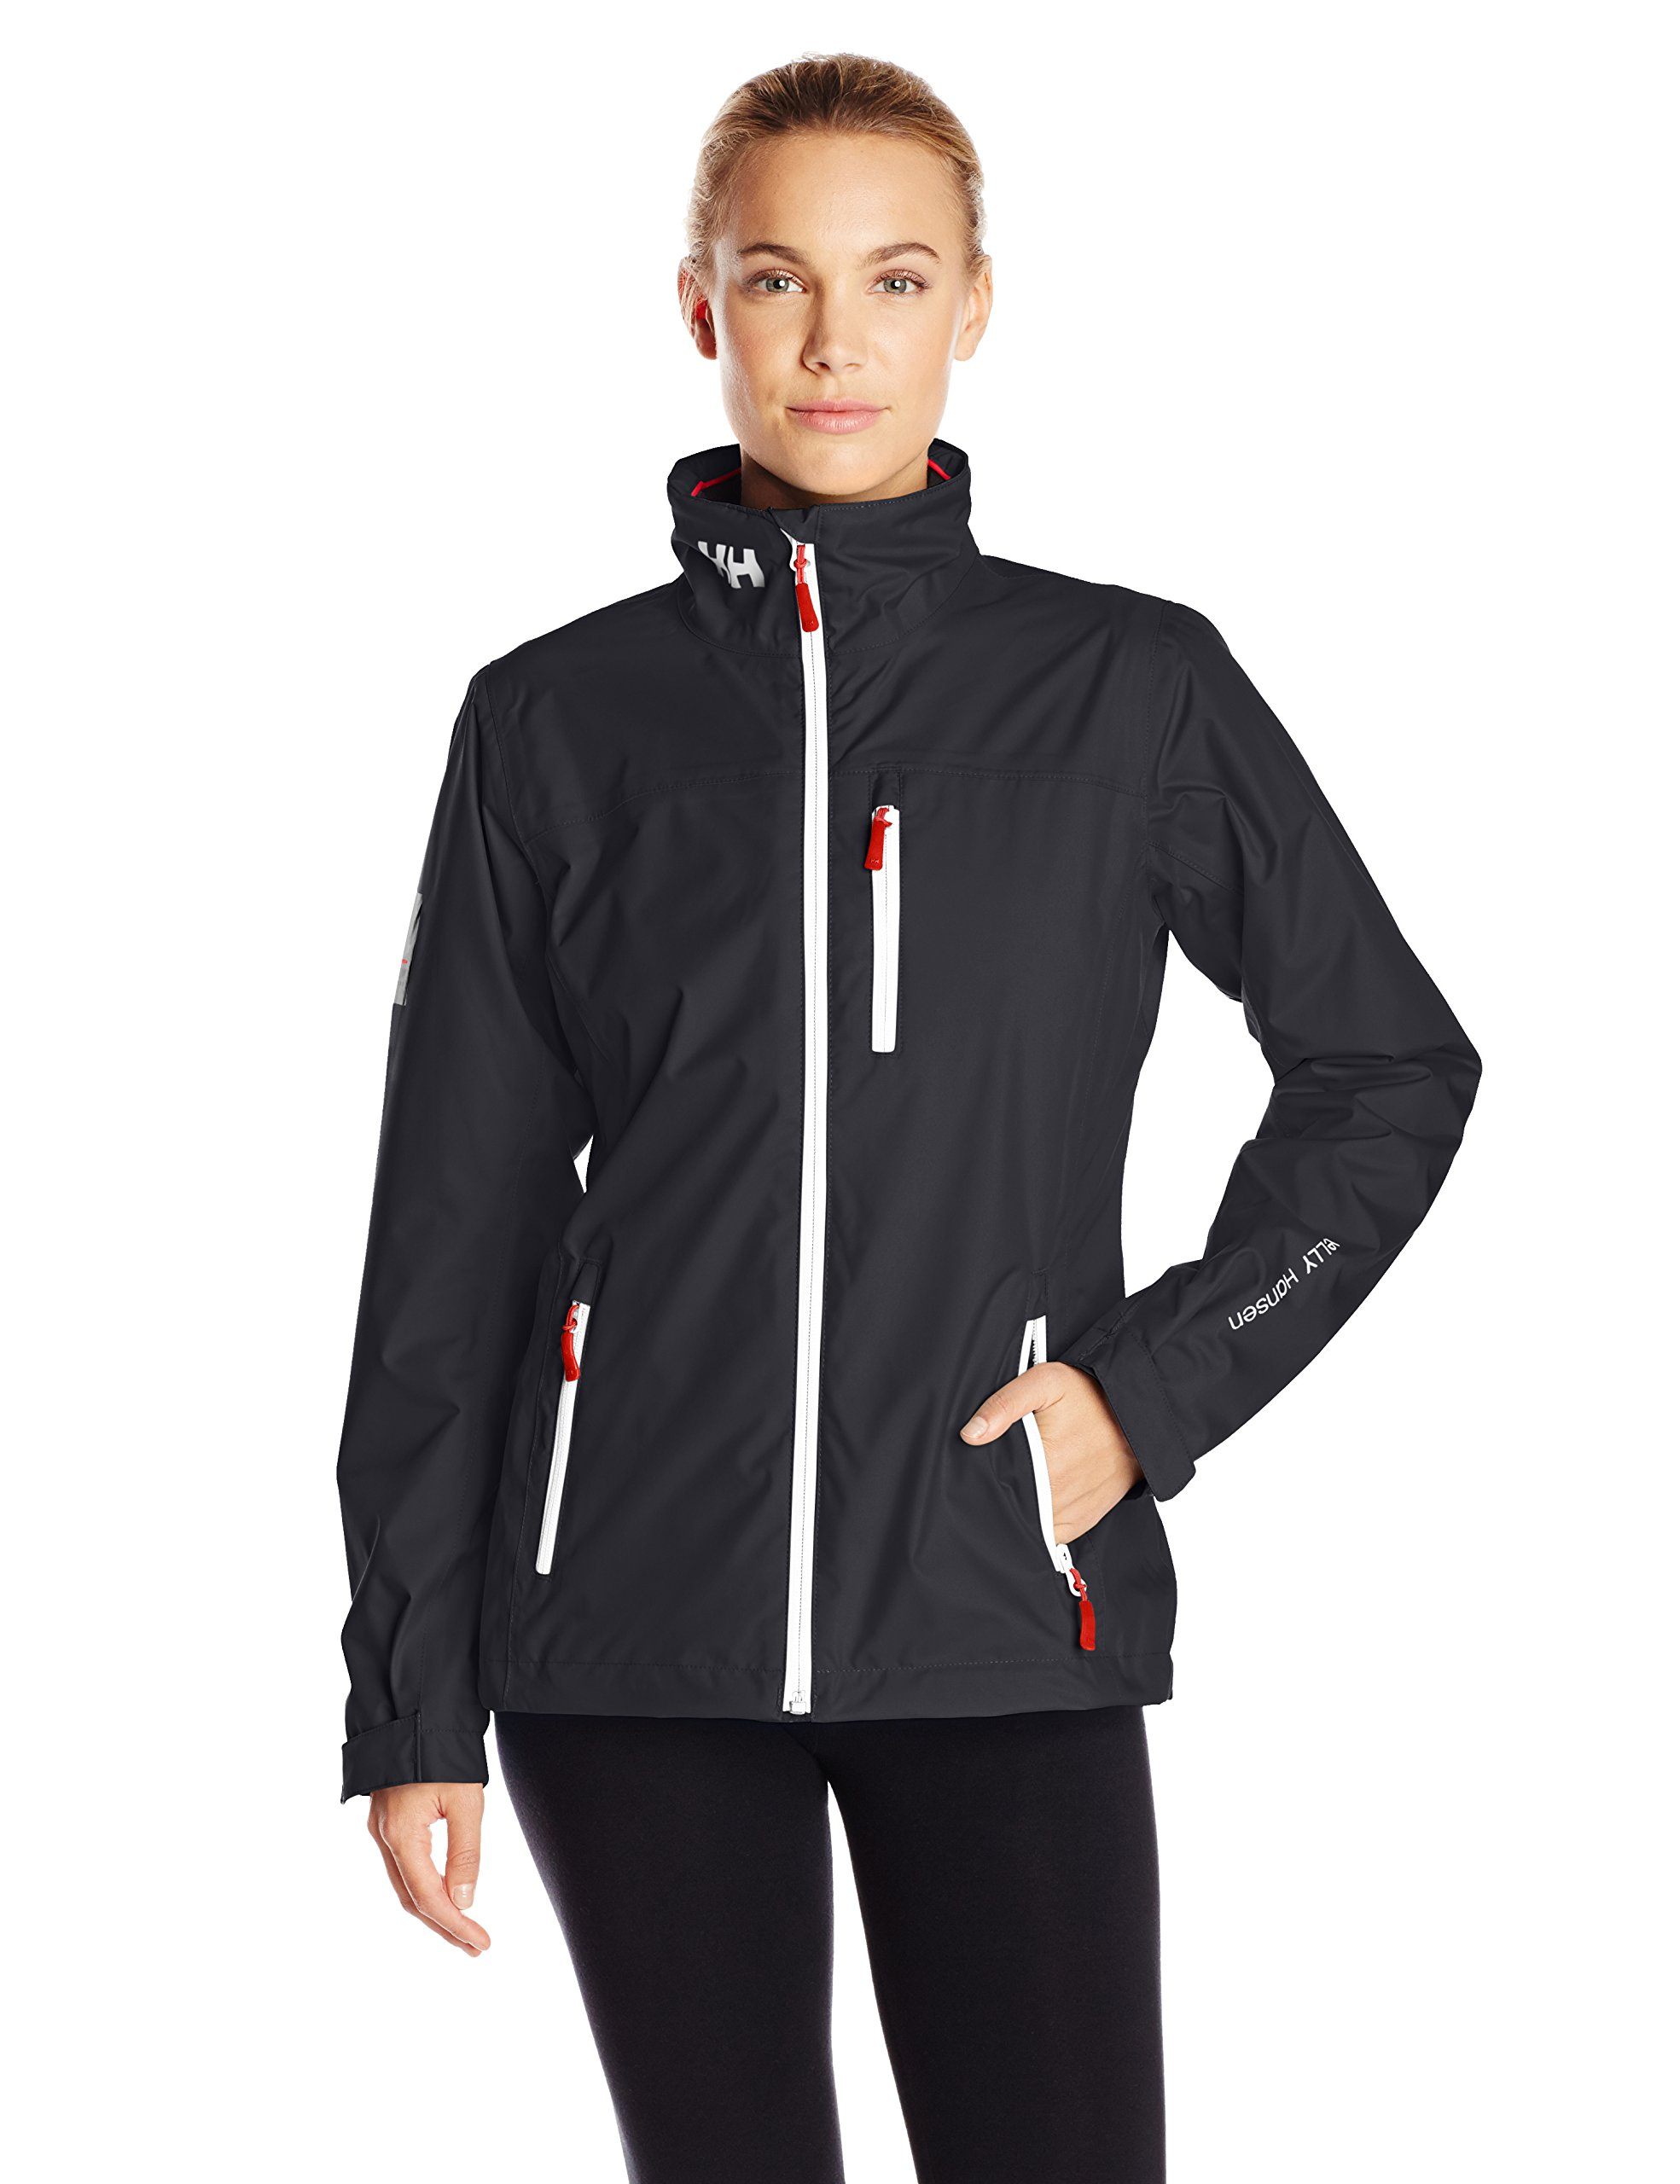 Helly Hansen Women's Crew Midlayer Jacket, Navy, Medium